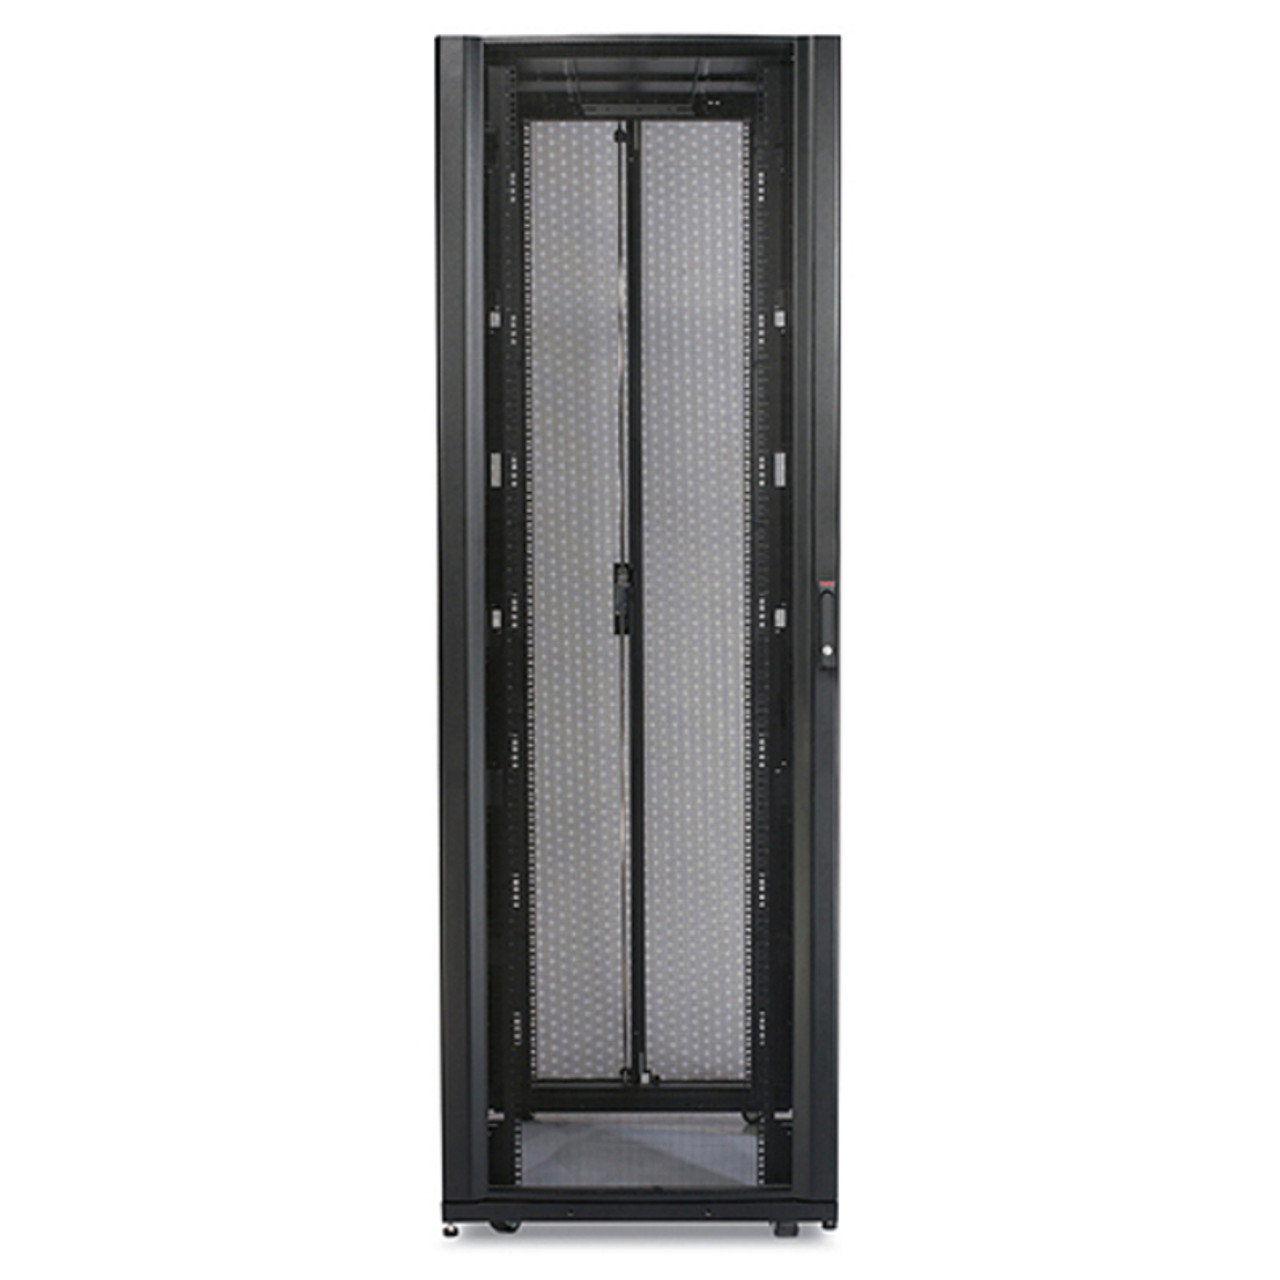 Image for APC AR3150 NetShelter SX 42U Enclosure with Sides - Black CX Computer Superstore